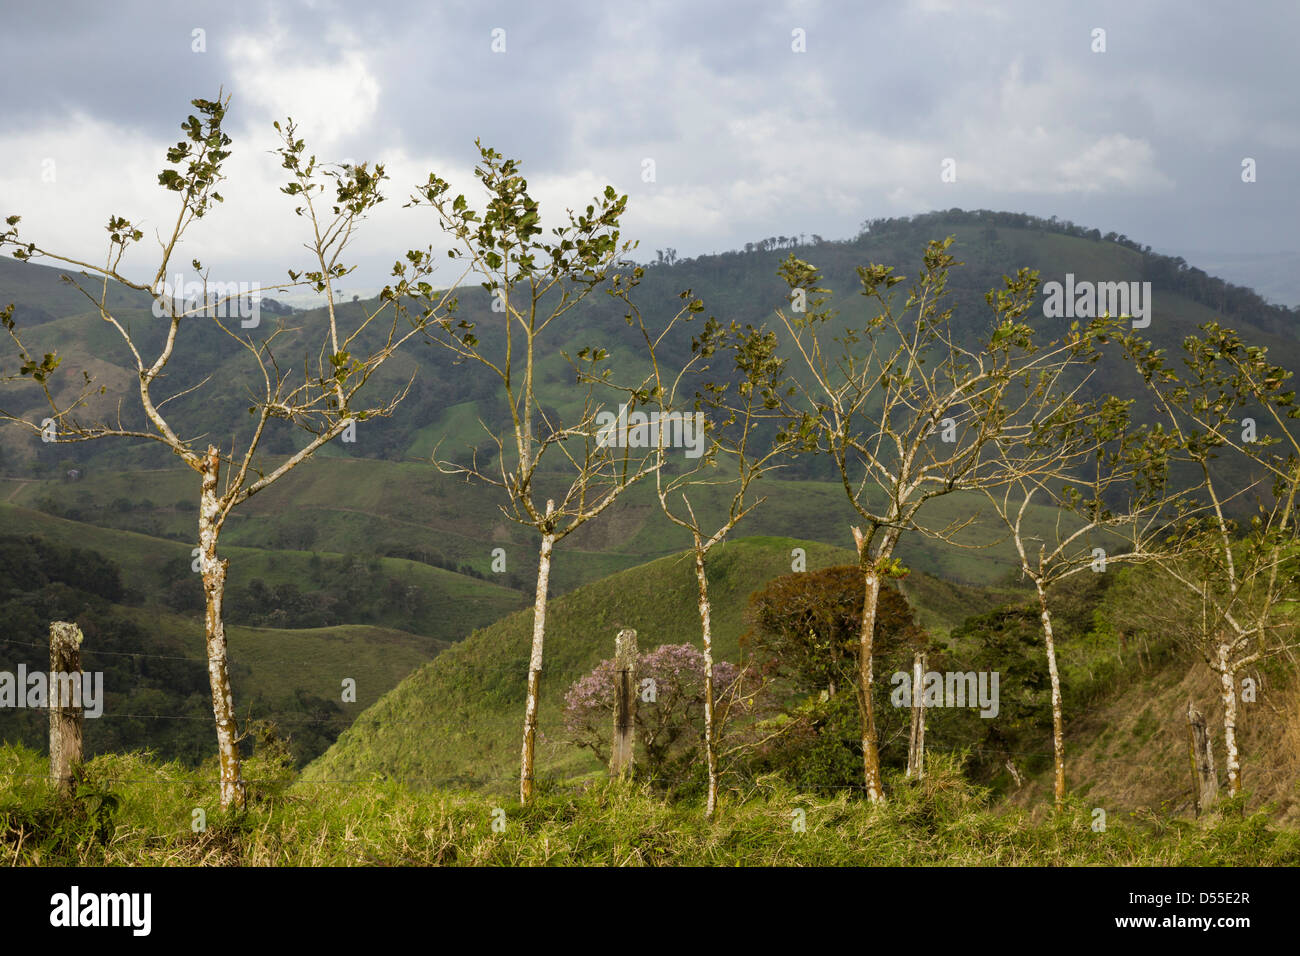 Roadside with Mountains in the Lake Arenal area of the Alajuela province, Costa Rica. - Stock Image